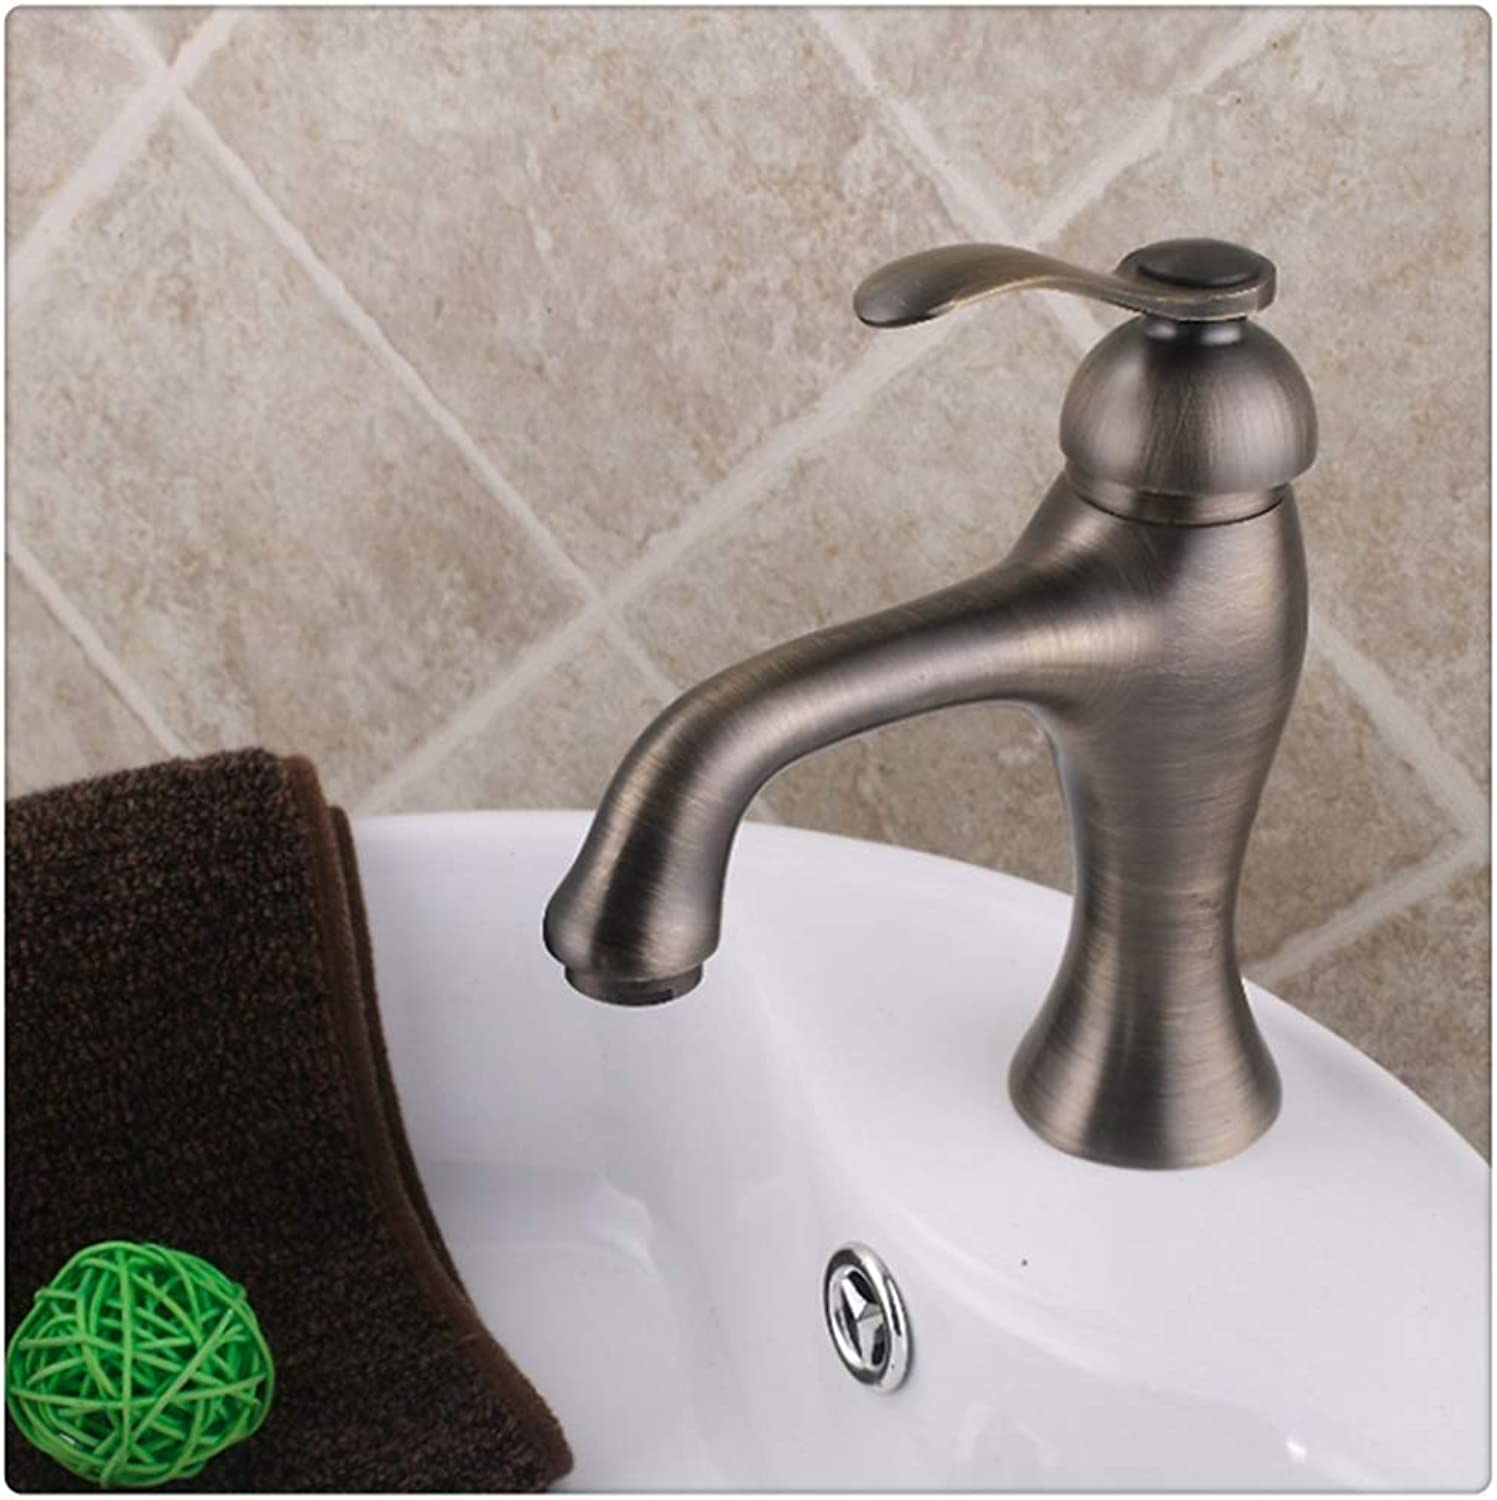 Bathroom Sink Taps Antique Swivel Deck Mounted Brass Bathroom Basin Sink Faucet